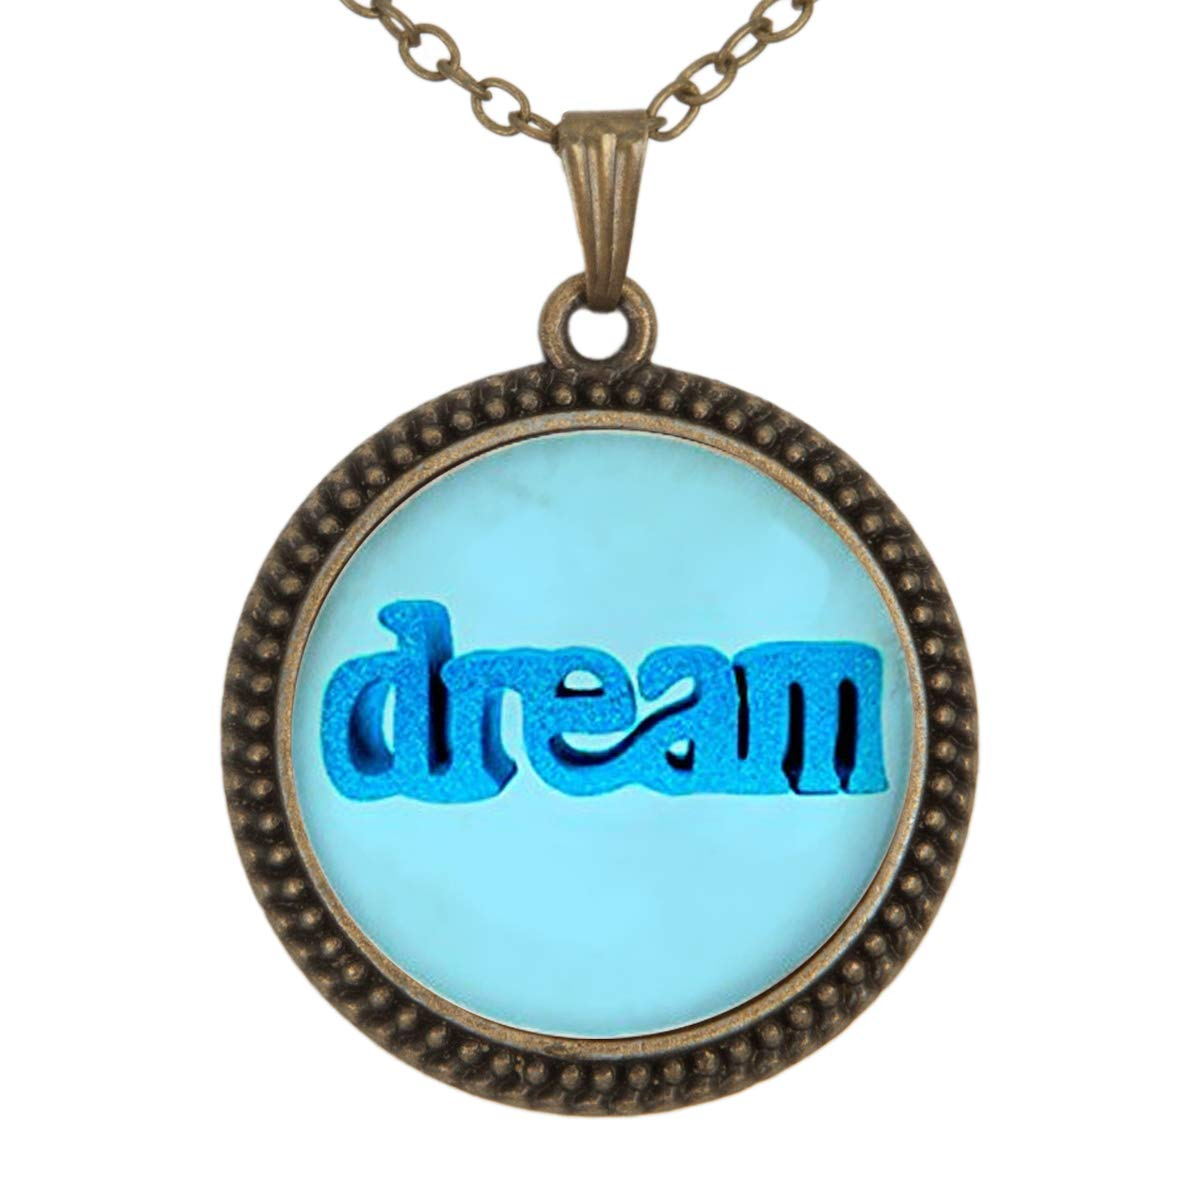 Family Decor English Word Blue Dream Pendant Necklace Cabochon Glass Vintage Bronze Chain Necklace Jewelry Handmade